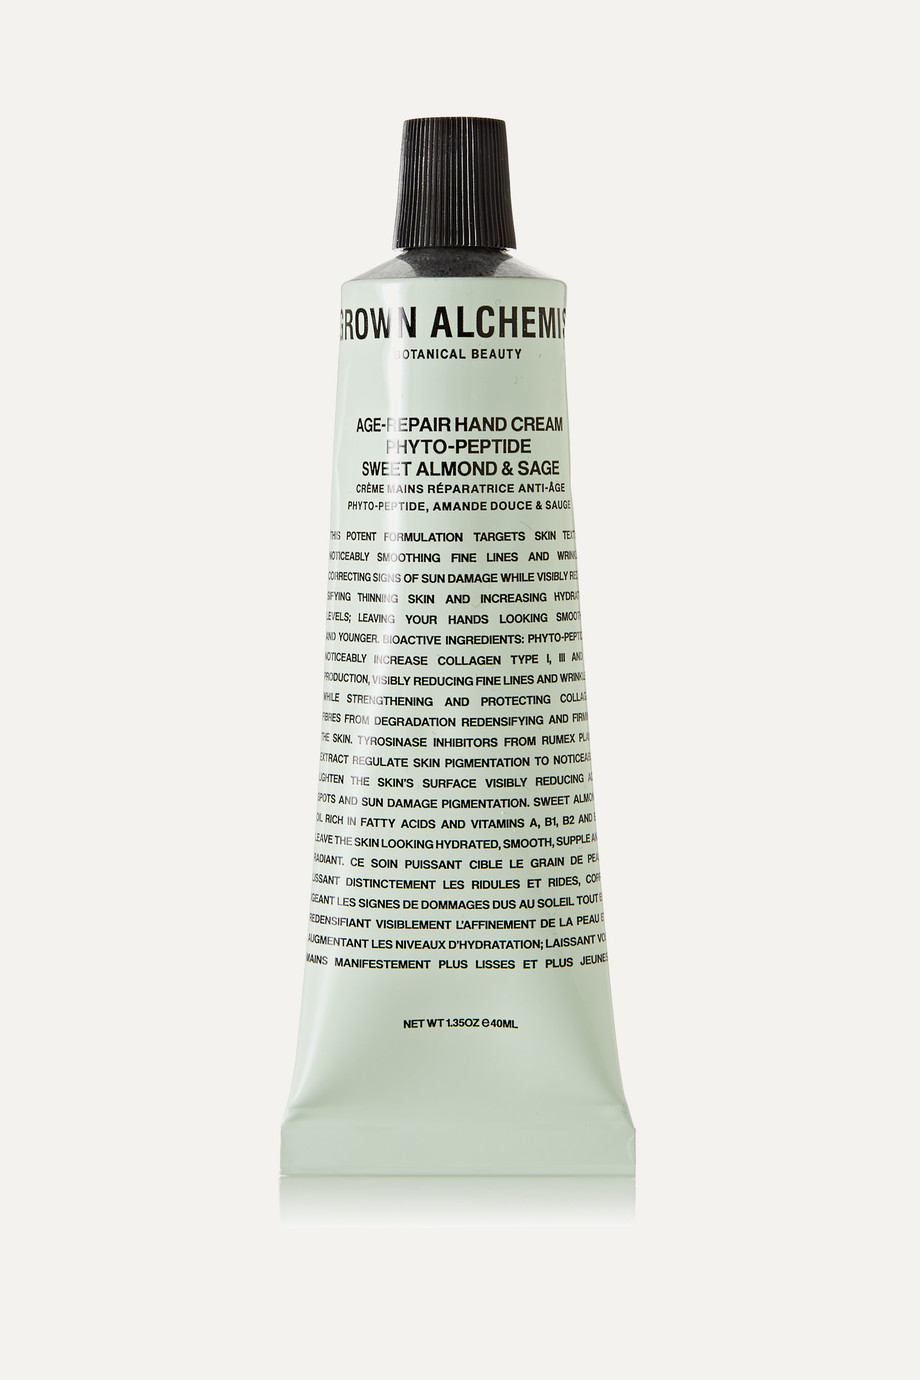 GROWN ALCHEMIST Age-Repair Hand Cream, 40ml